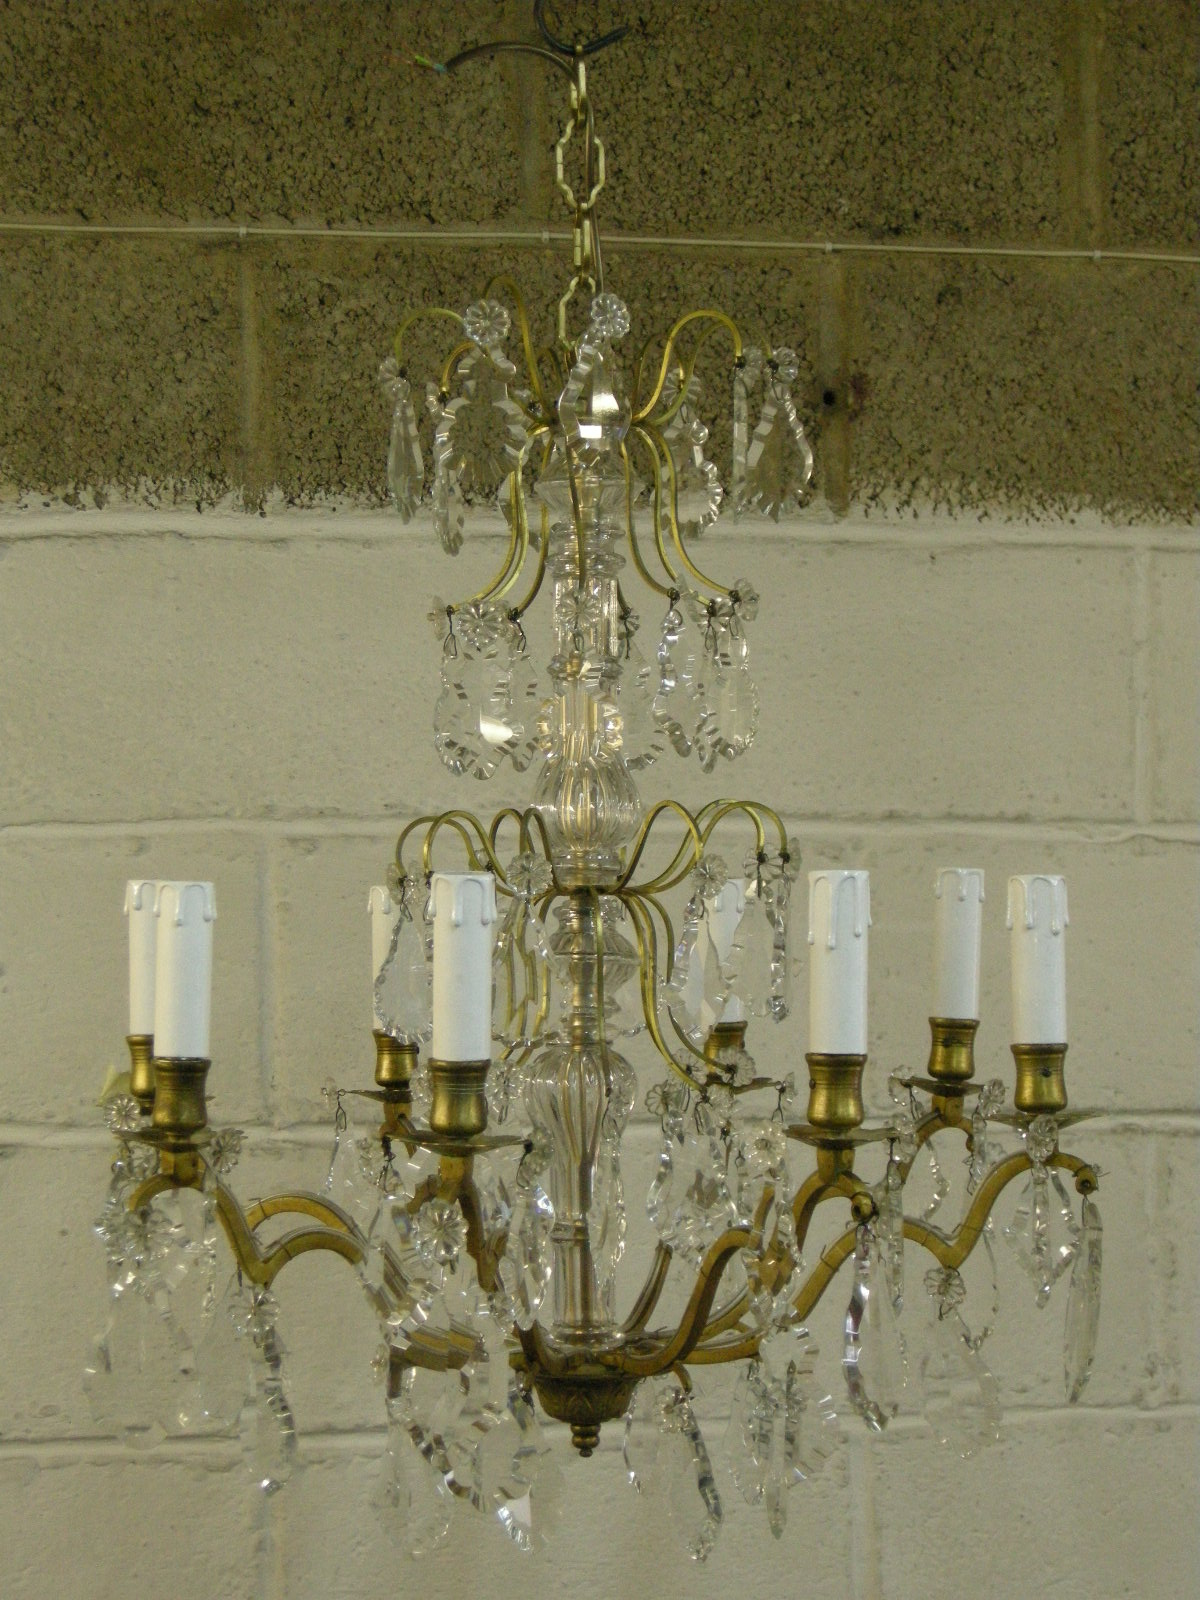 Antique chandelier restoration antique furniture crystal chandelier before restoration crystal chandelier after restoration antique metals chandelier repairs restoration arubaitofo Gallery